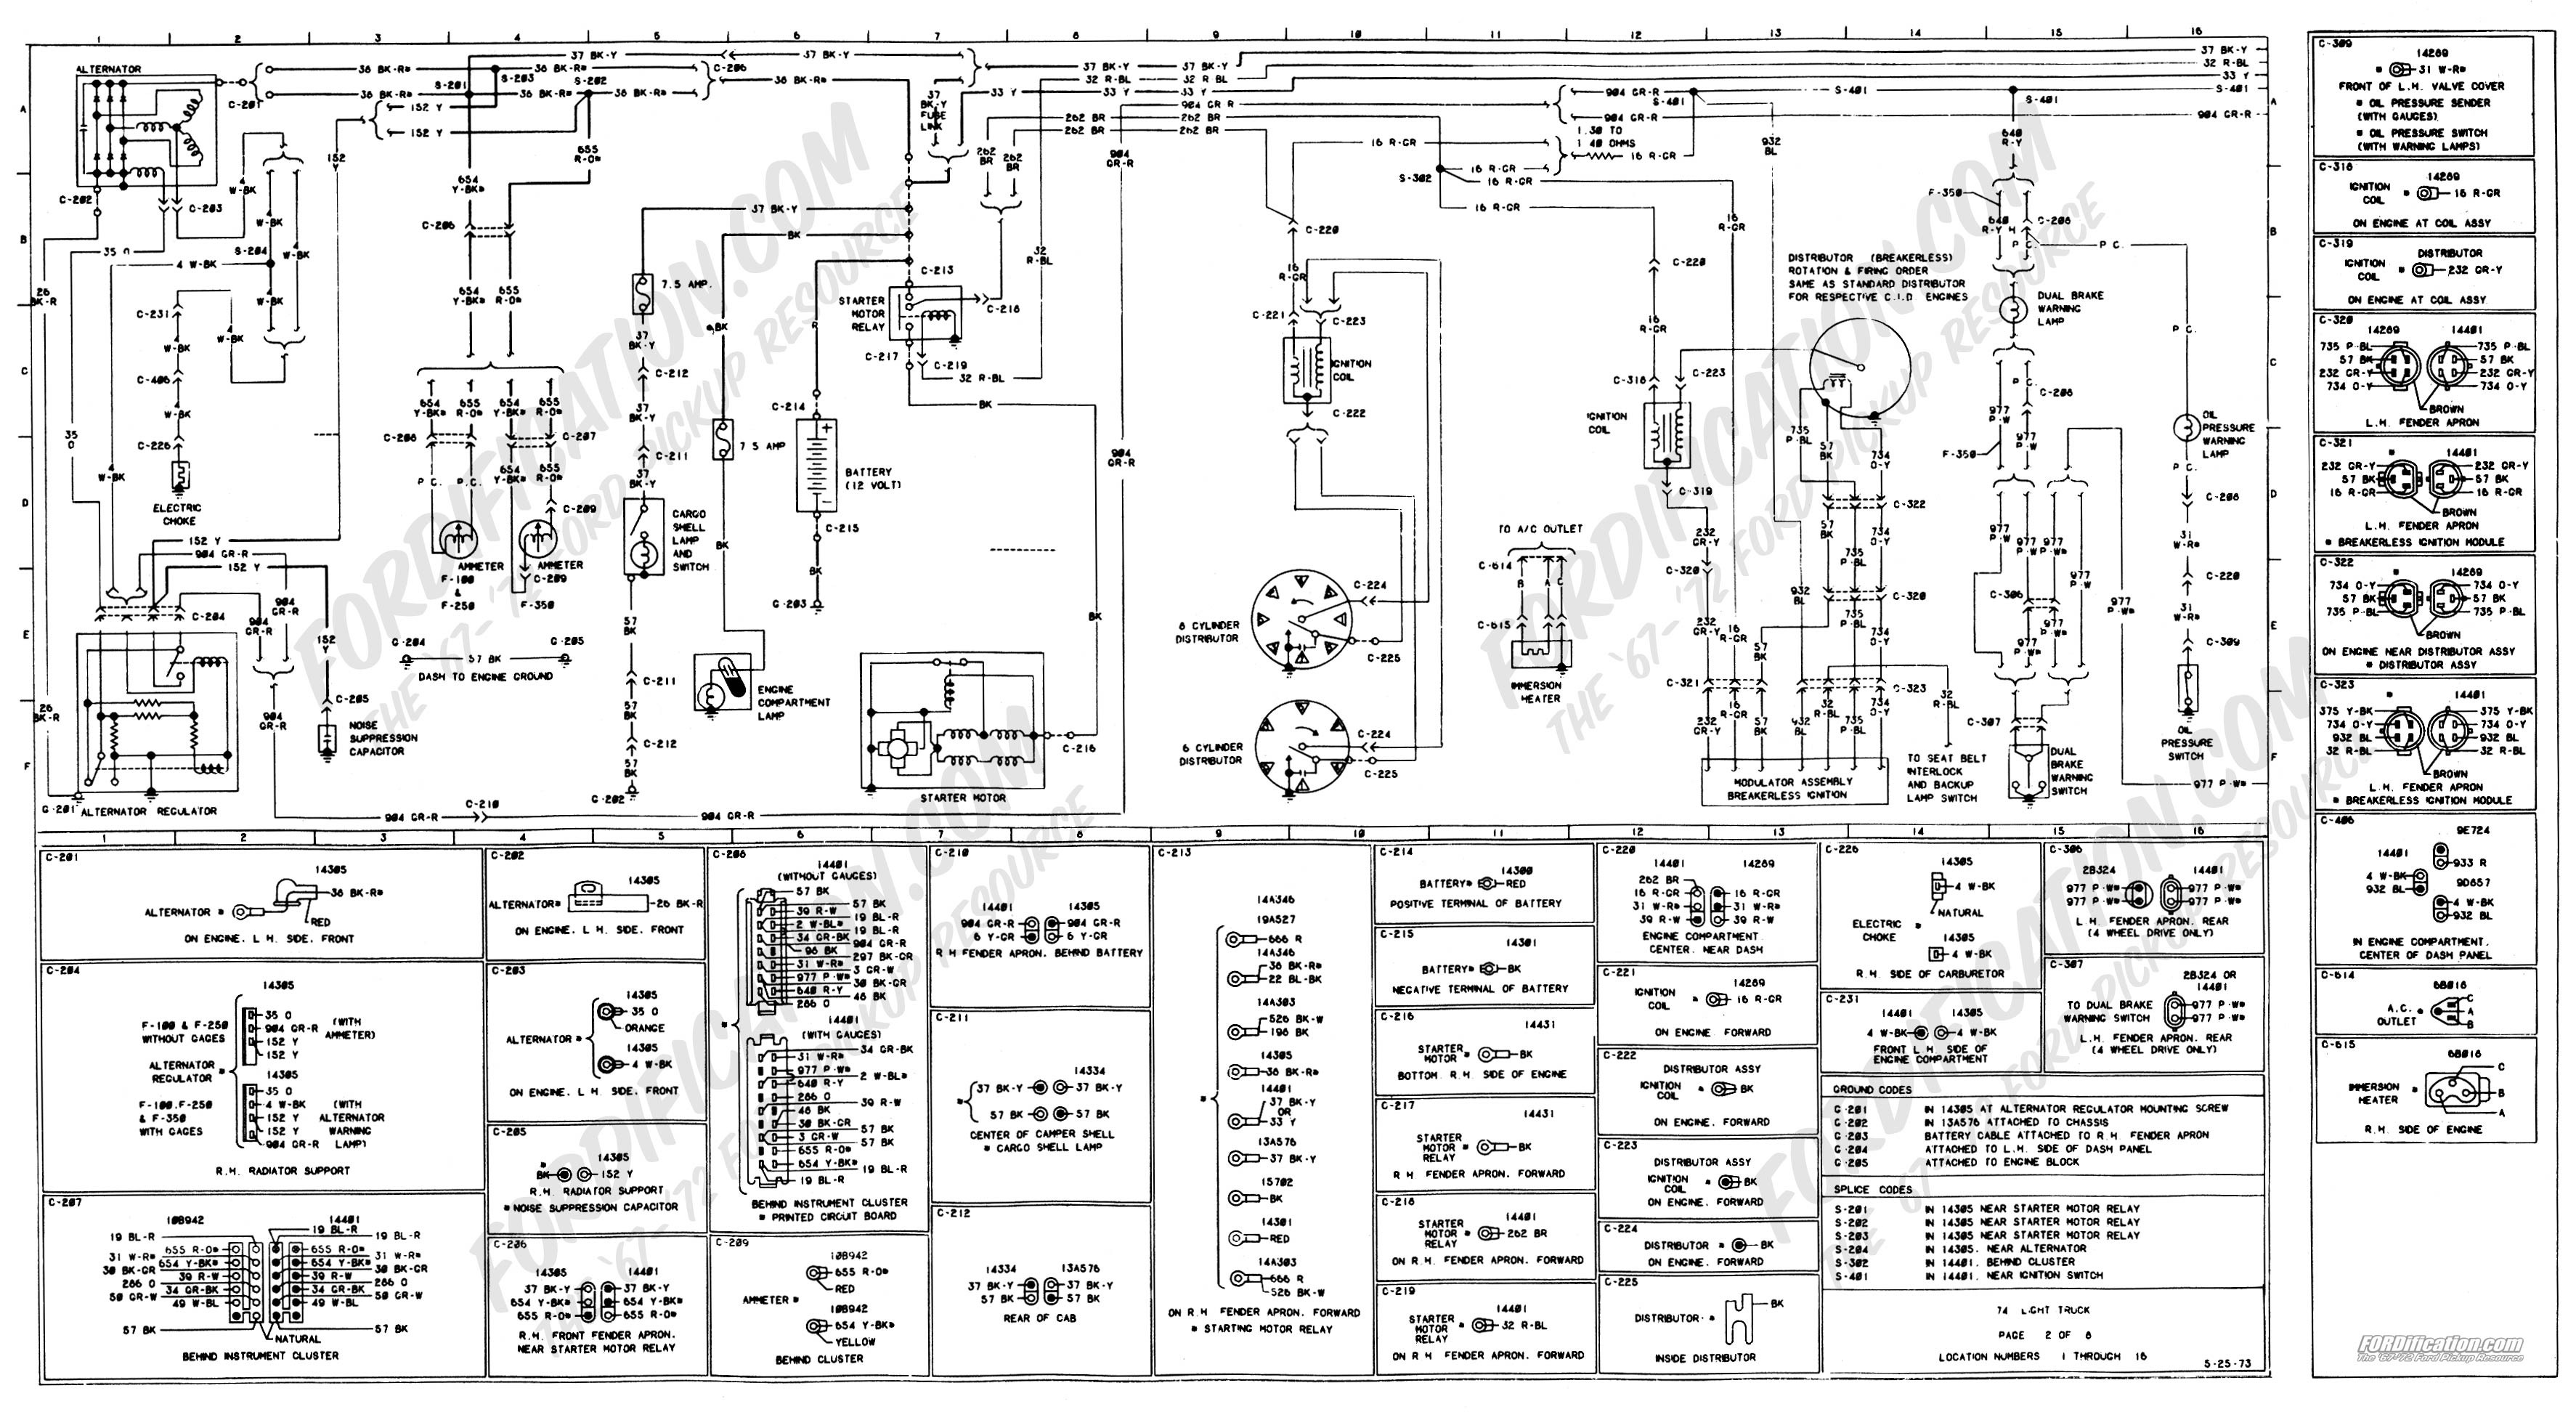 1999 Crown Victoria Fuse Diagram Wiring Library 99 Box Sterling Truck Diagrams For Alternator Best Site Vic 2003